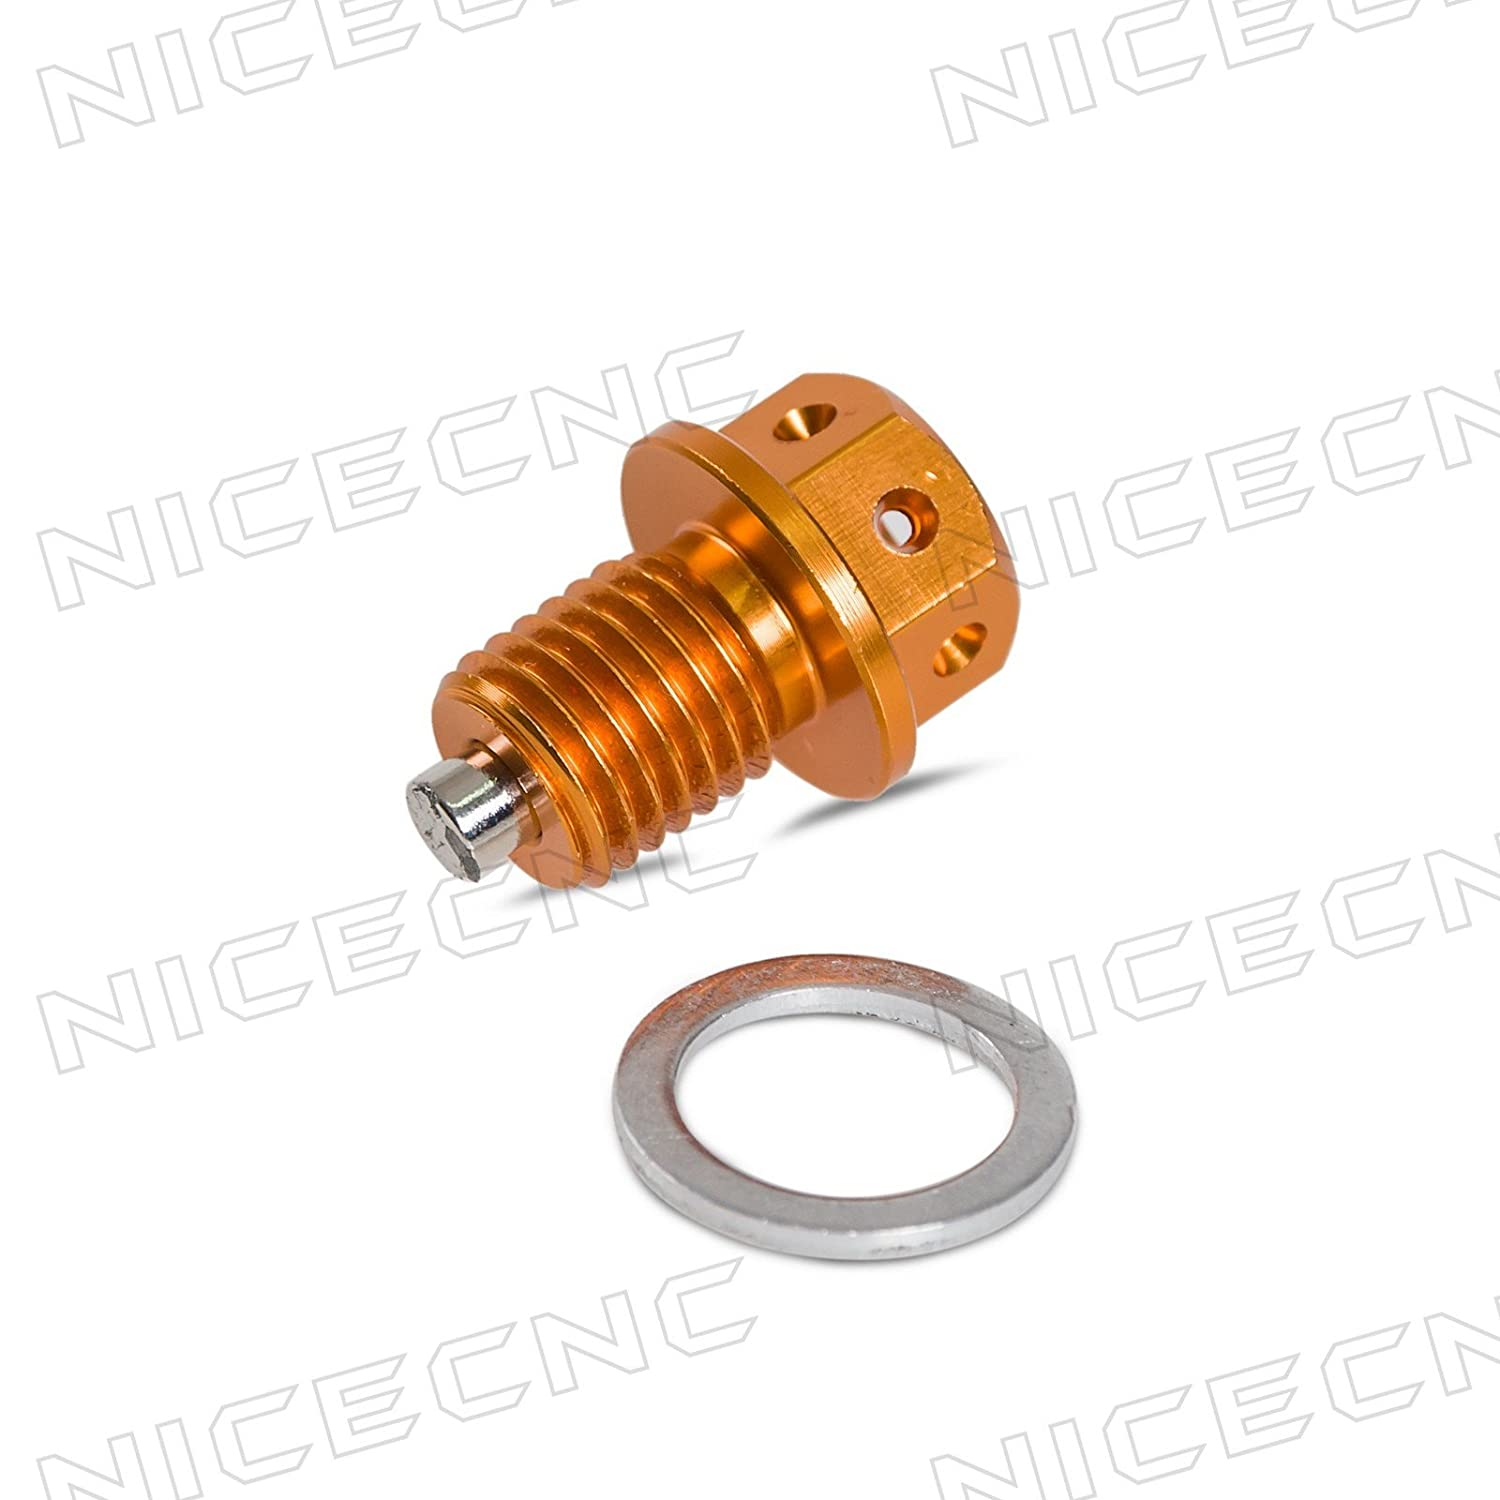 NICECNC 14mm * P1.5 Gold Magnetic Oil Drain Plugs Bolt YZF-R1 R6 R6S FZ1 FZ6 FZ8 MT01/07/09 CNC